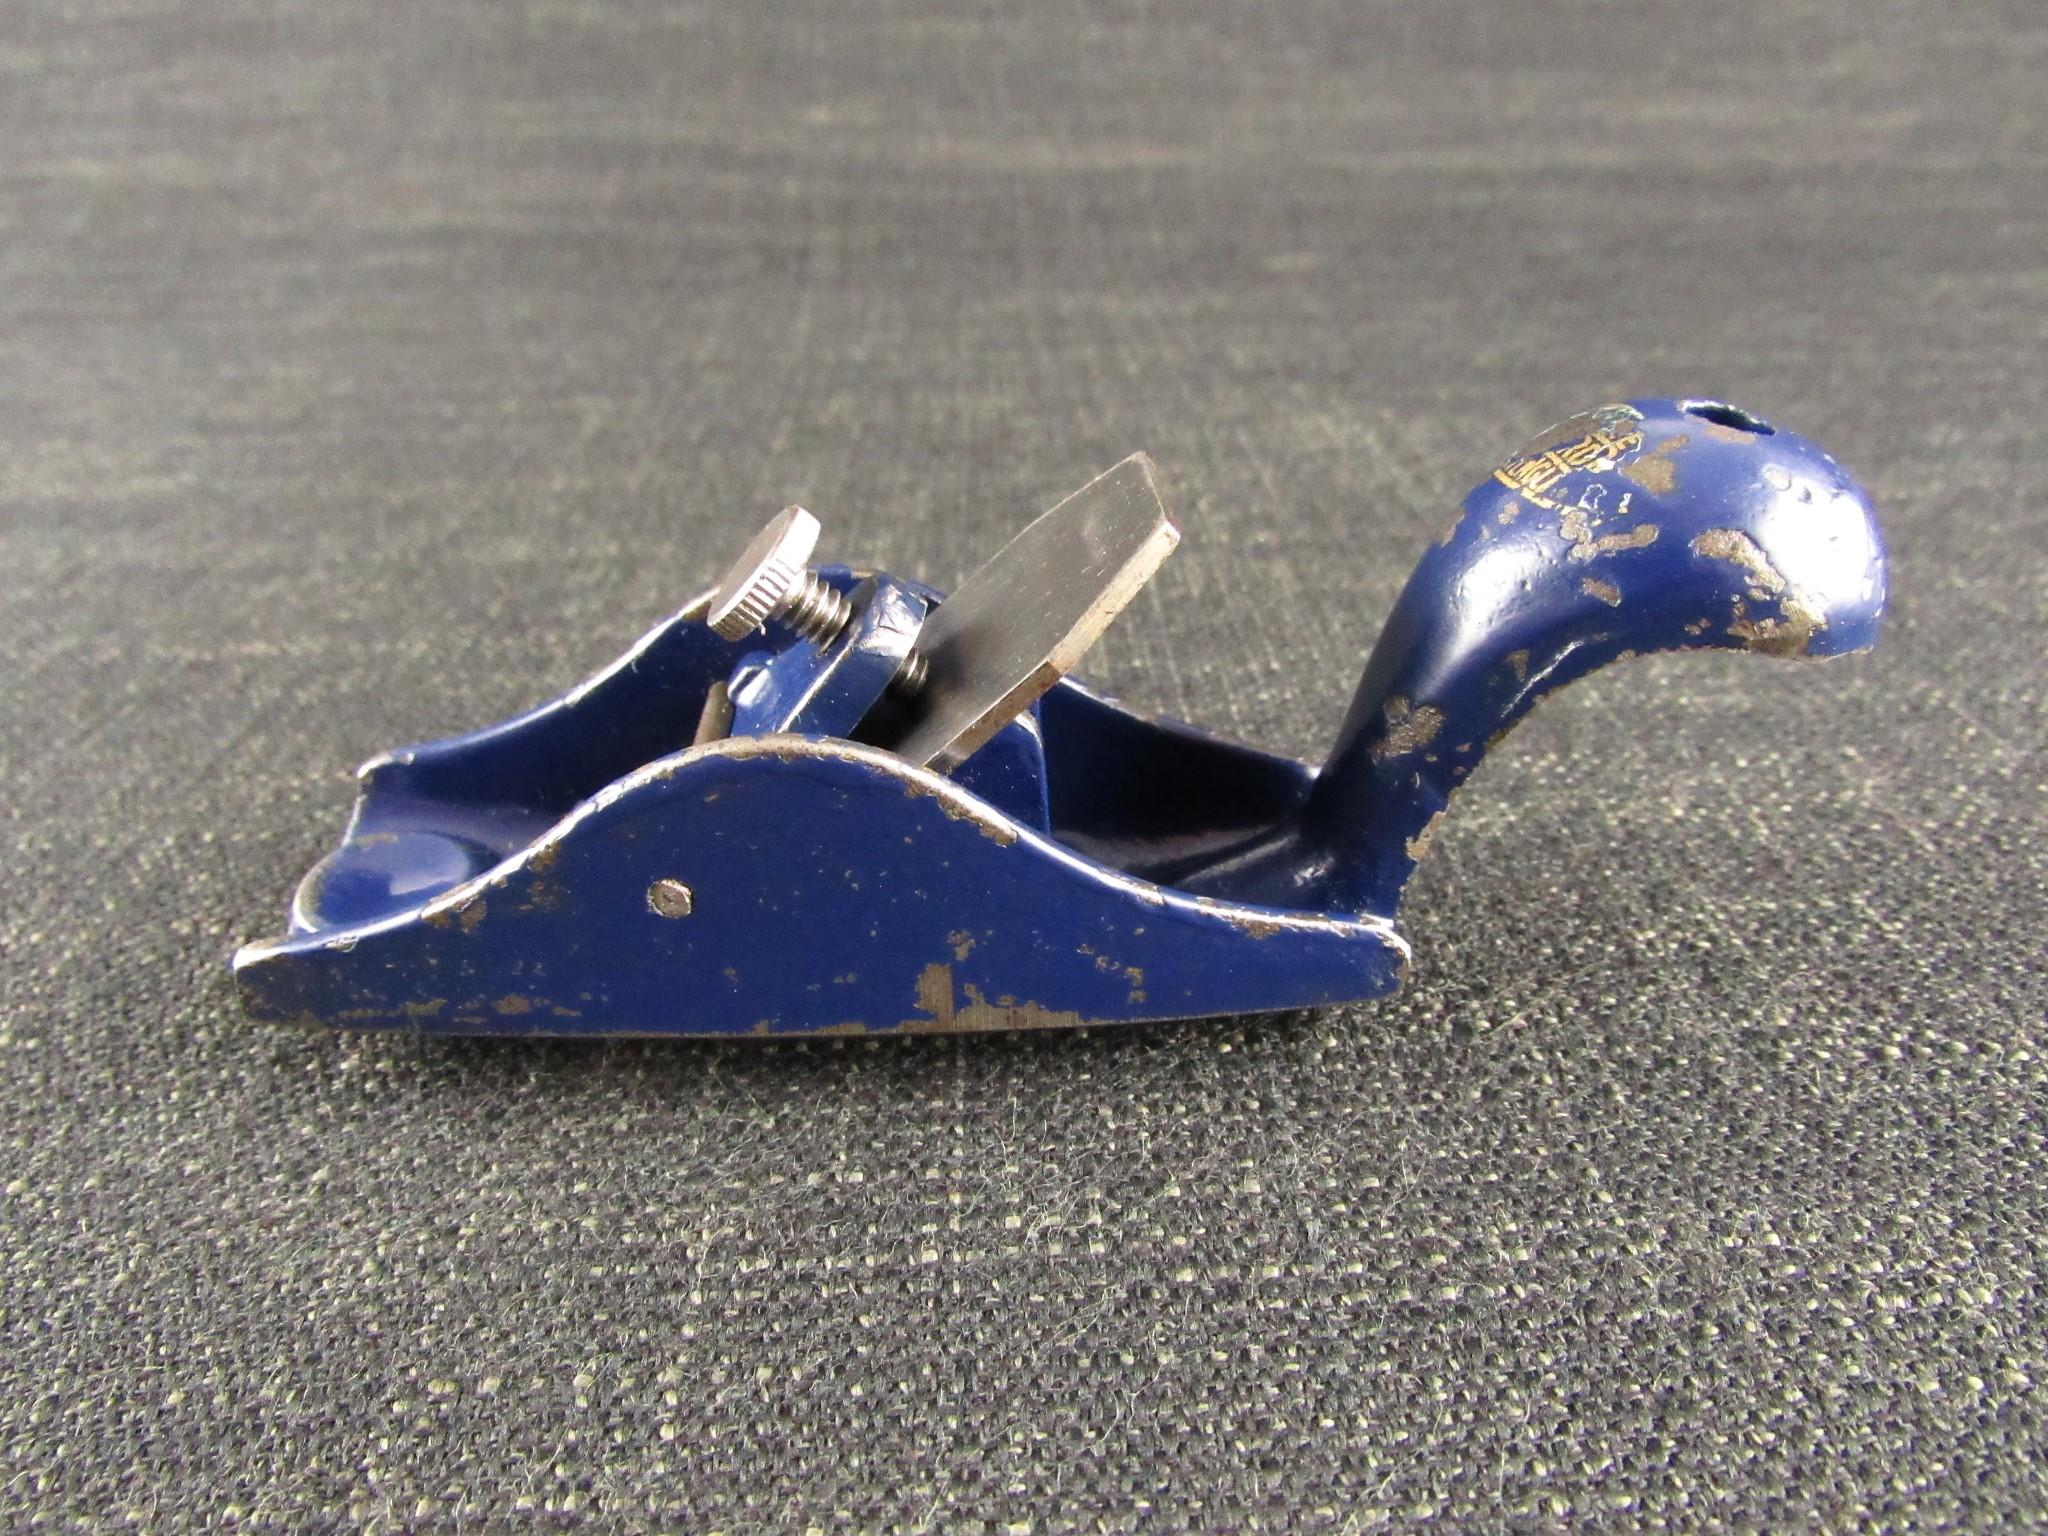 Rare RECORD 0100 1/2 Model Makers' Plane - Block Plane